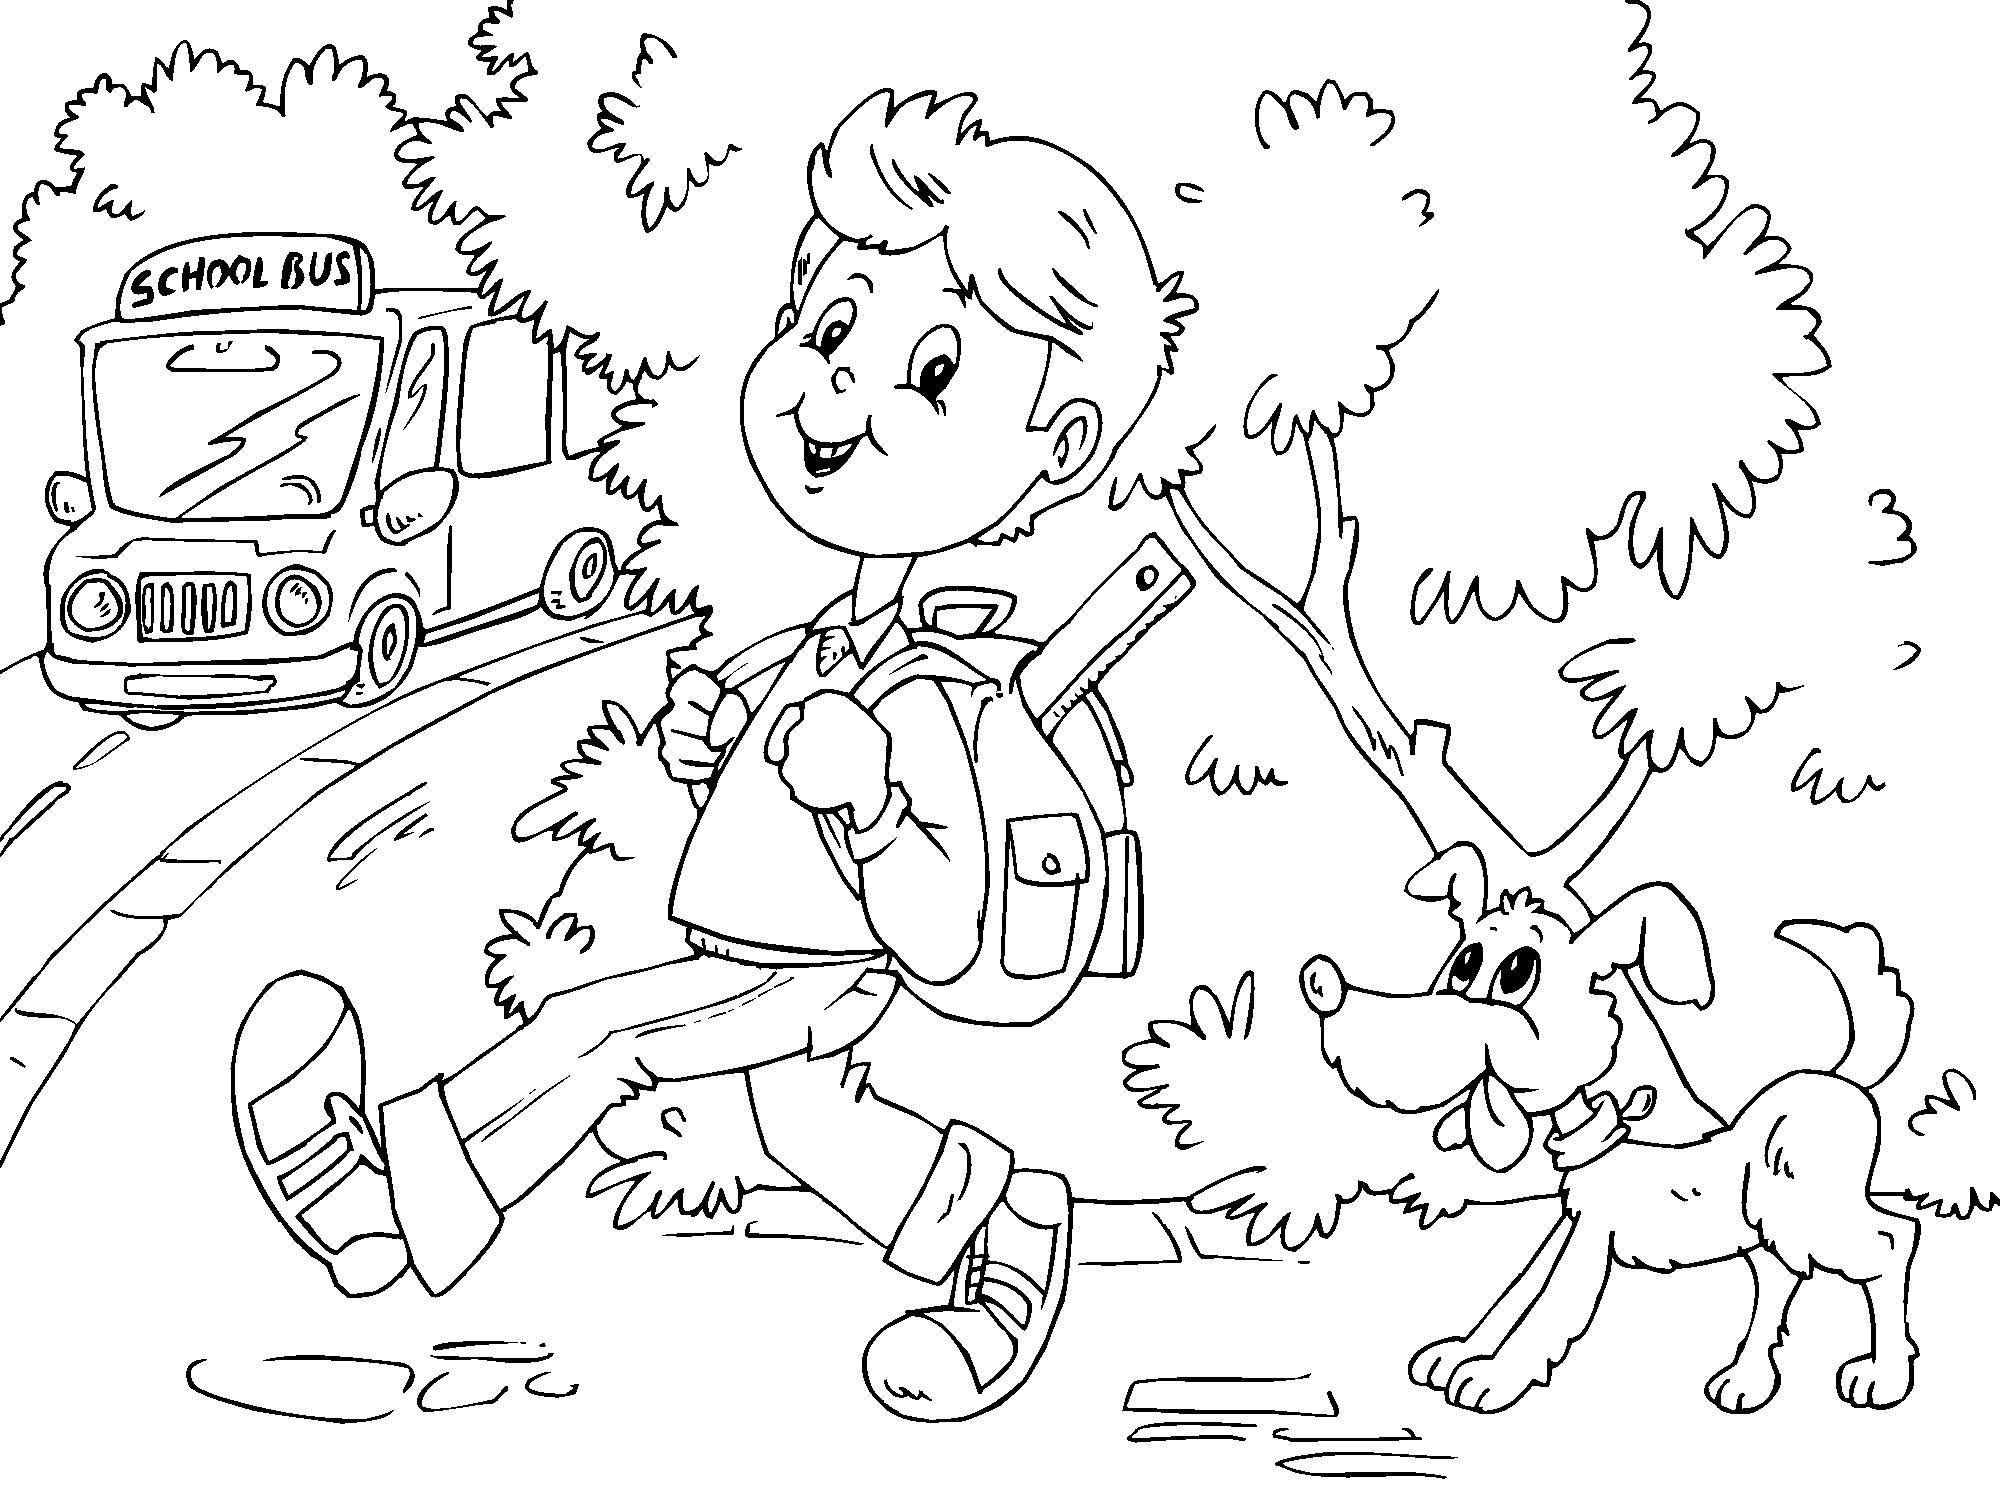 Dibujos Sobre La Escuela Para Colorear E Imprimir: Free Printable School Bus Coloring Pages For Kids